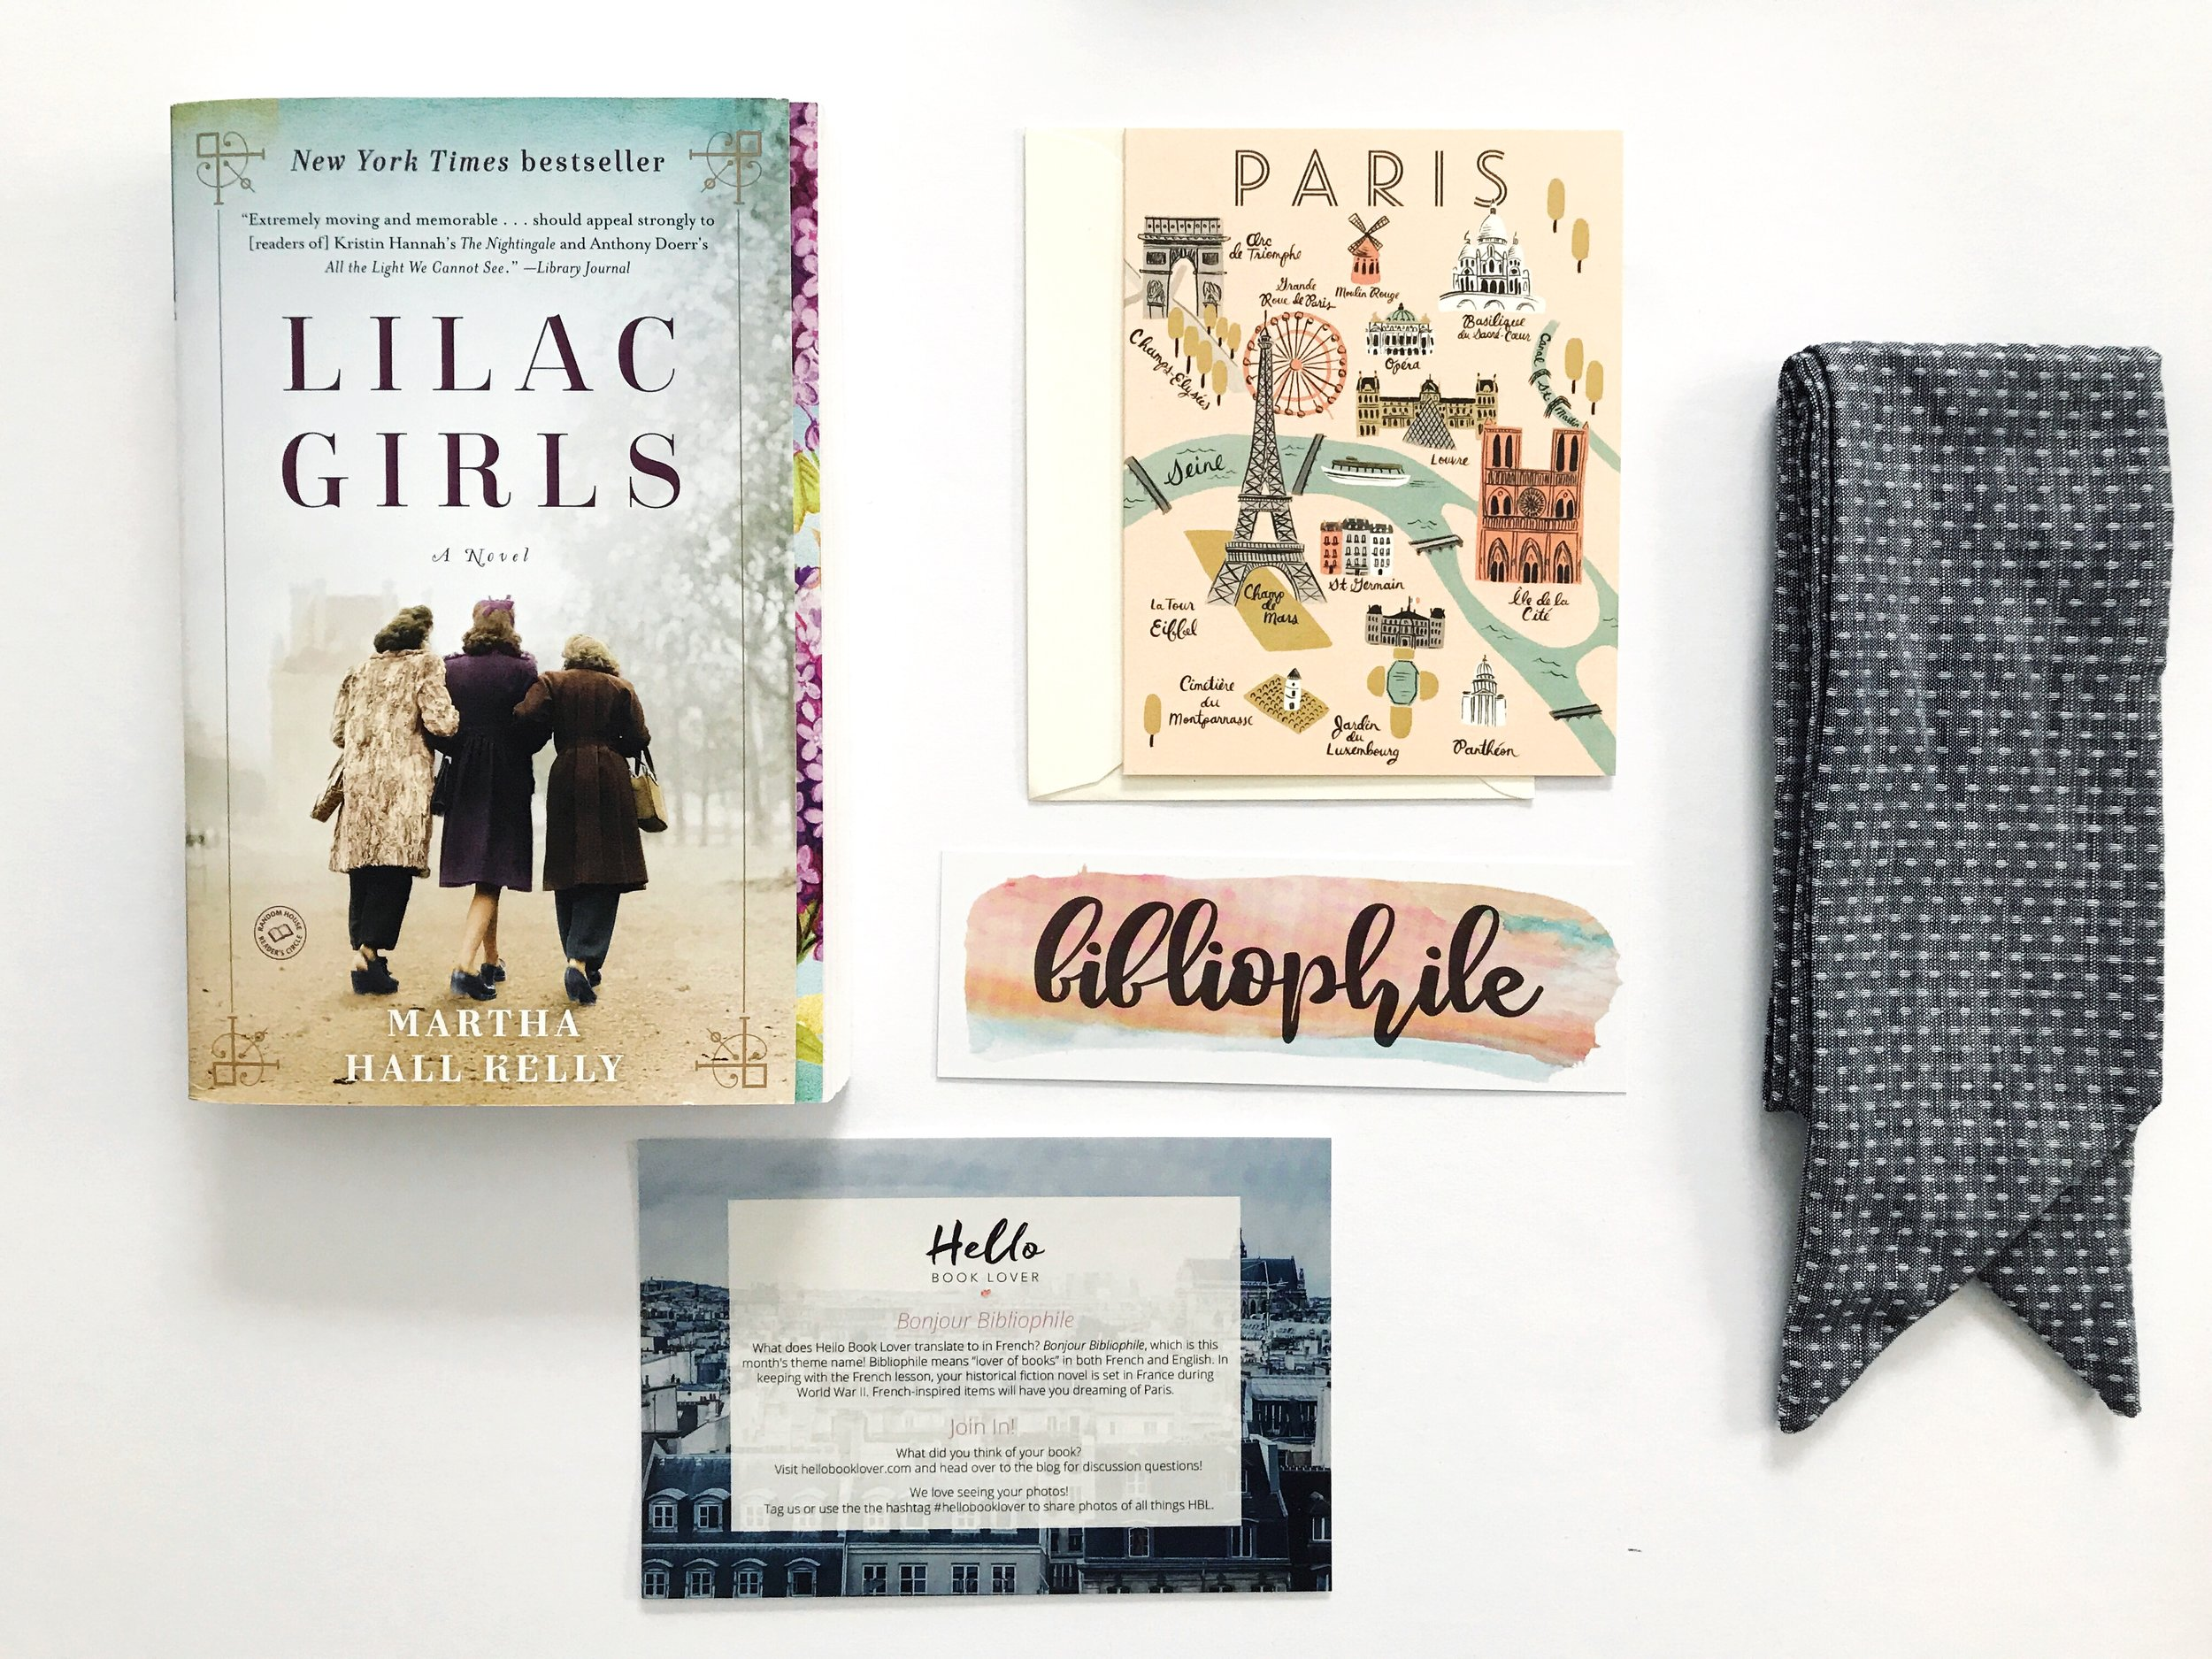 5 Subscription Book Boxes to Give as Gifts - 4) Hello Book Lover